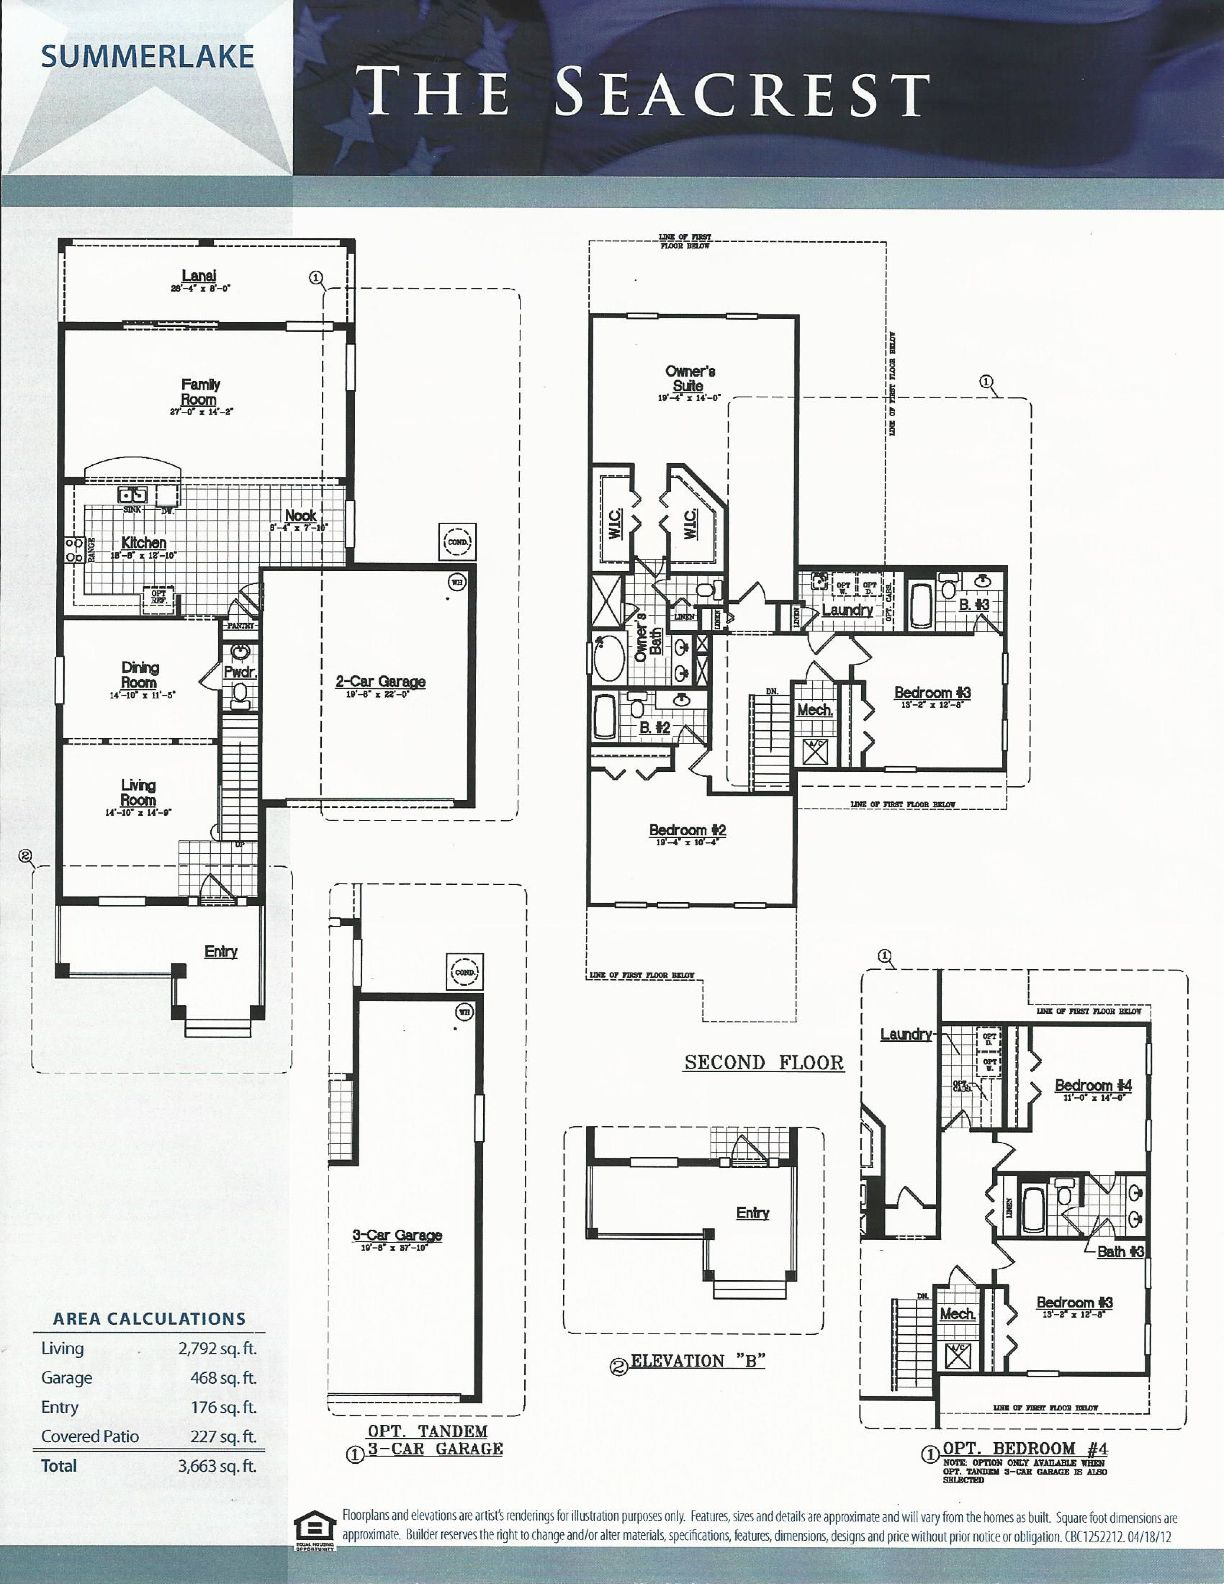 Summerlake dr horton homes seacrest floor plan in winter for Summerlake house plan